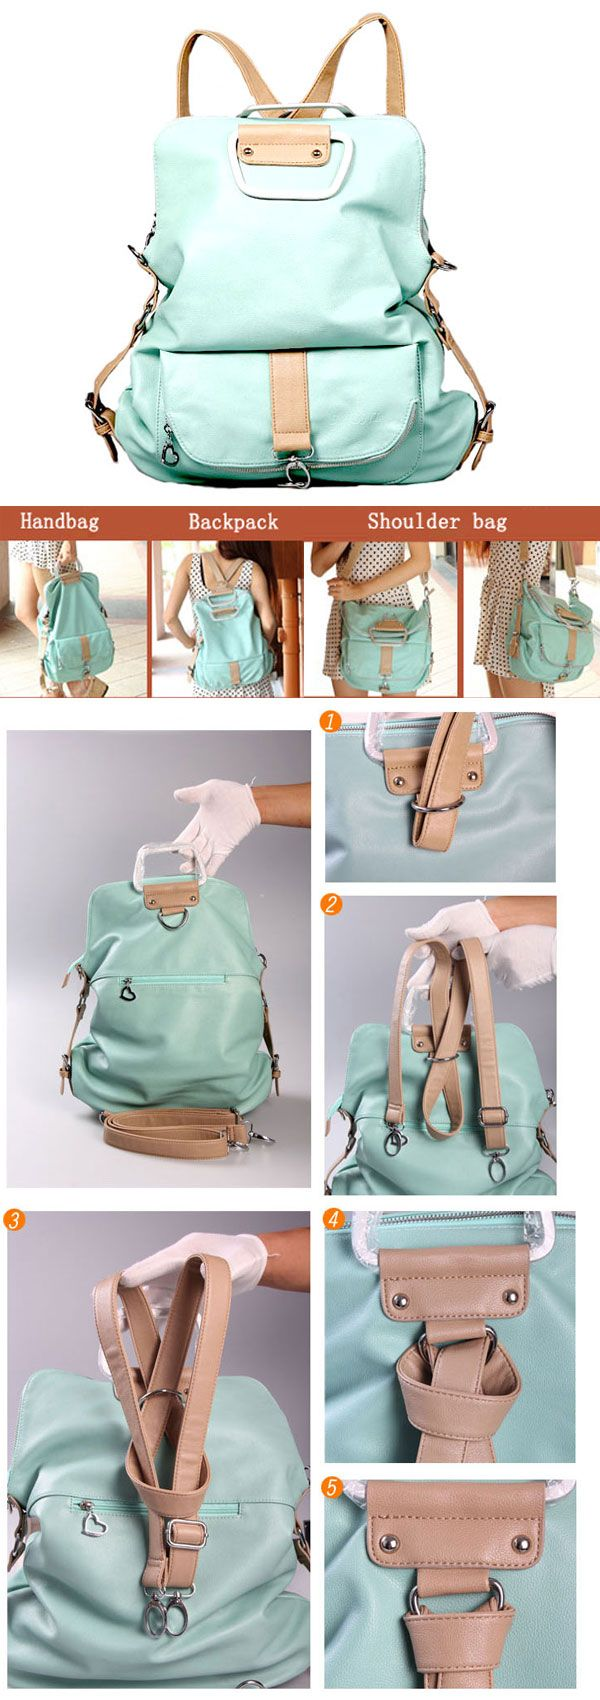 44bf409a8 I am so happy to find the Unique Fresh Multifunction Backpack & Handbag & Shoulder  Bag from ByGoods.com. I like it <3!Do you like it,too?